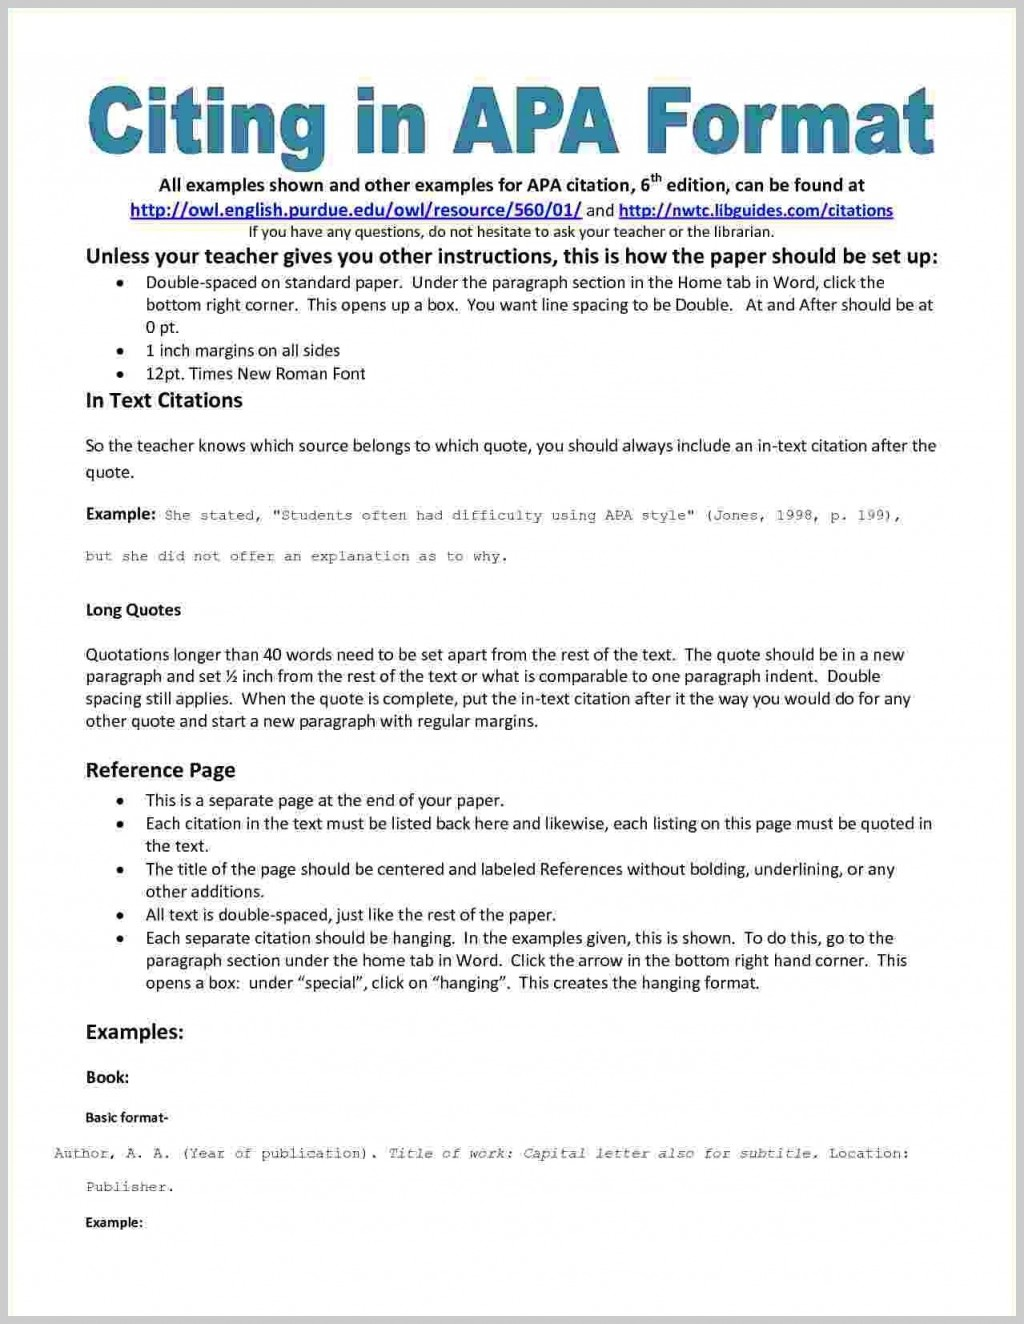 004 Research Papers Database Paper Apa Style Reference In Text Citation Mla Examples Toreto Co Impressive On Distributed Security Management System Free Large